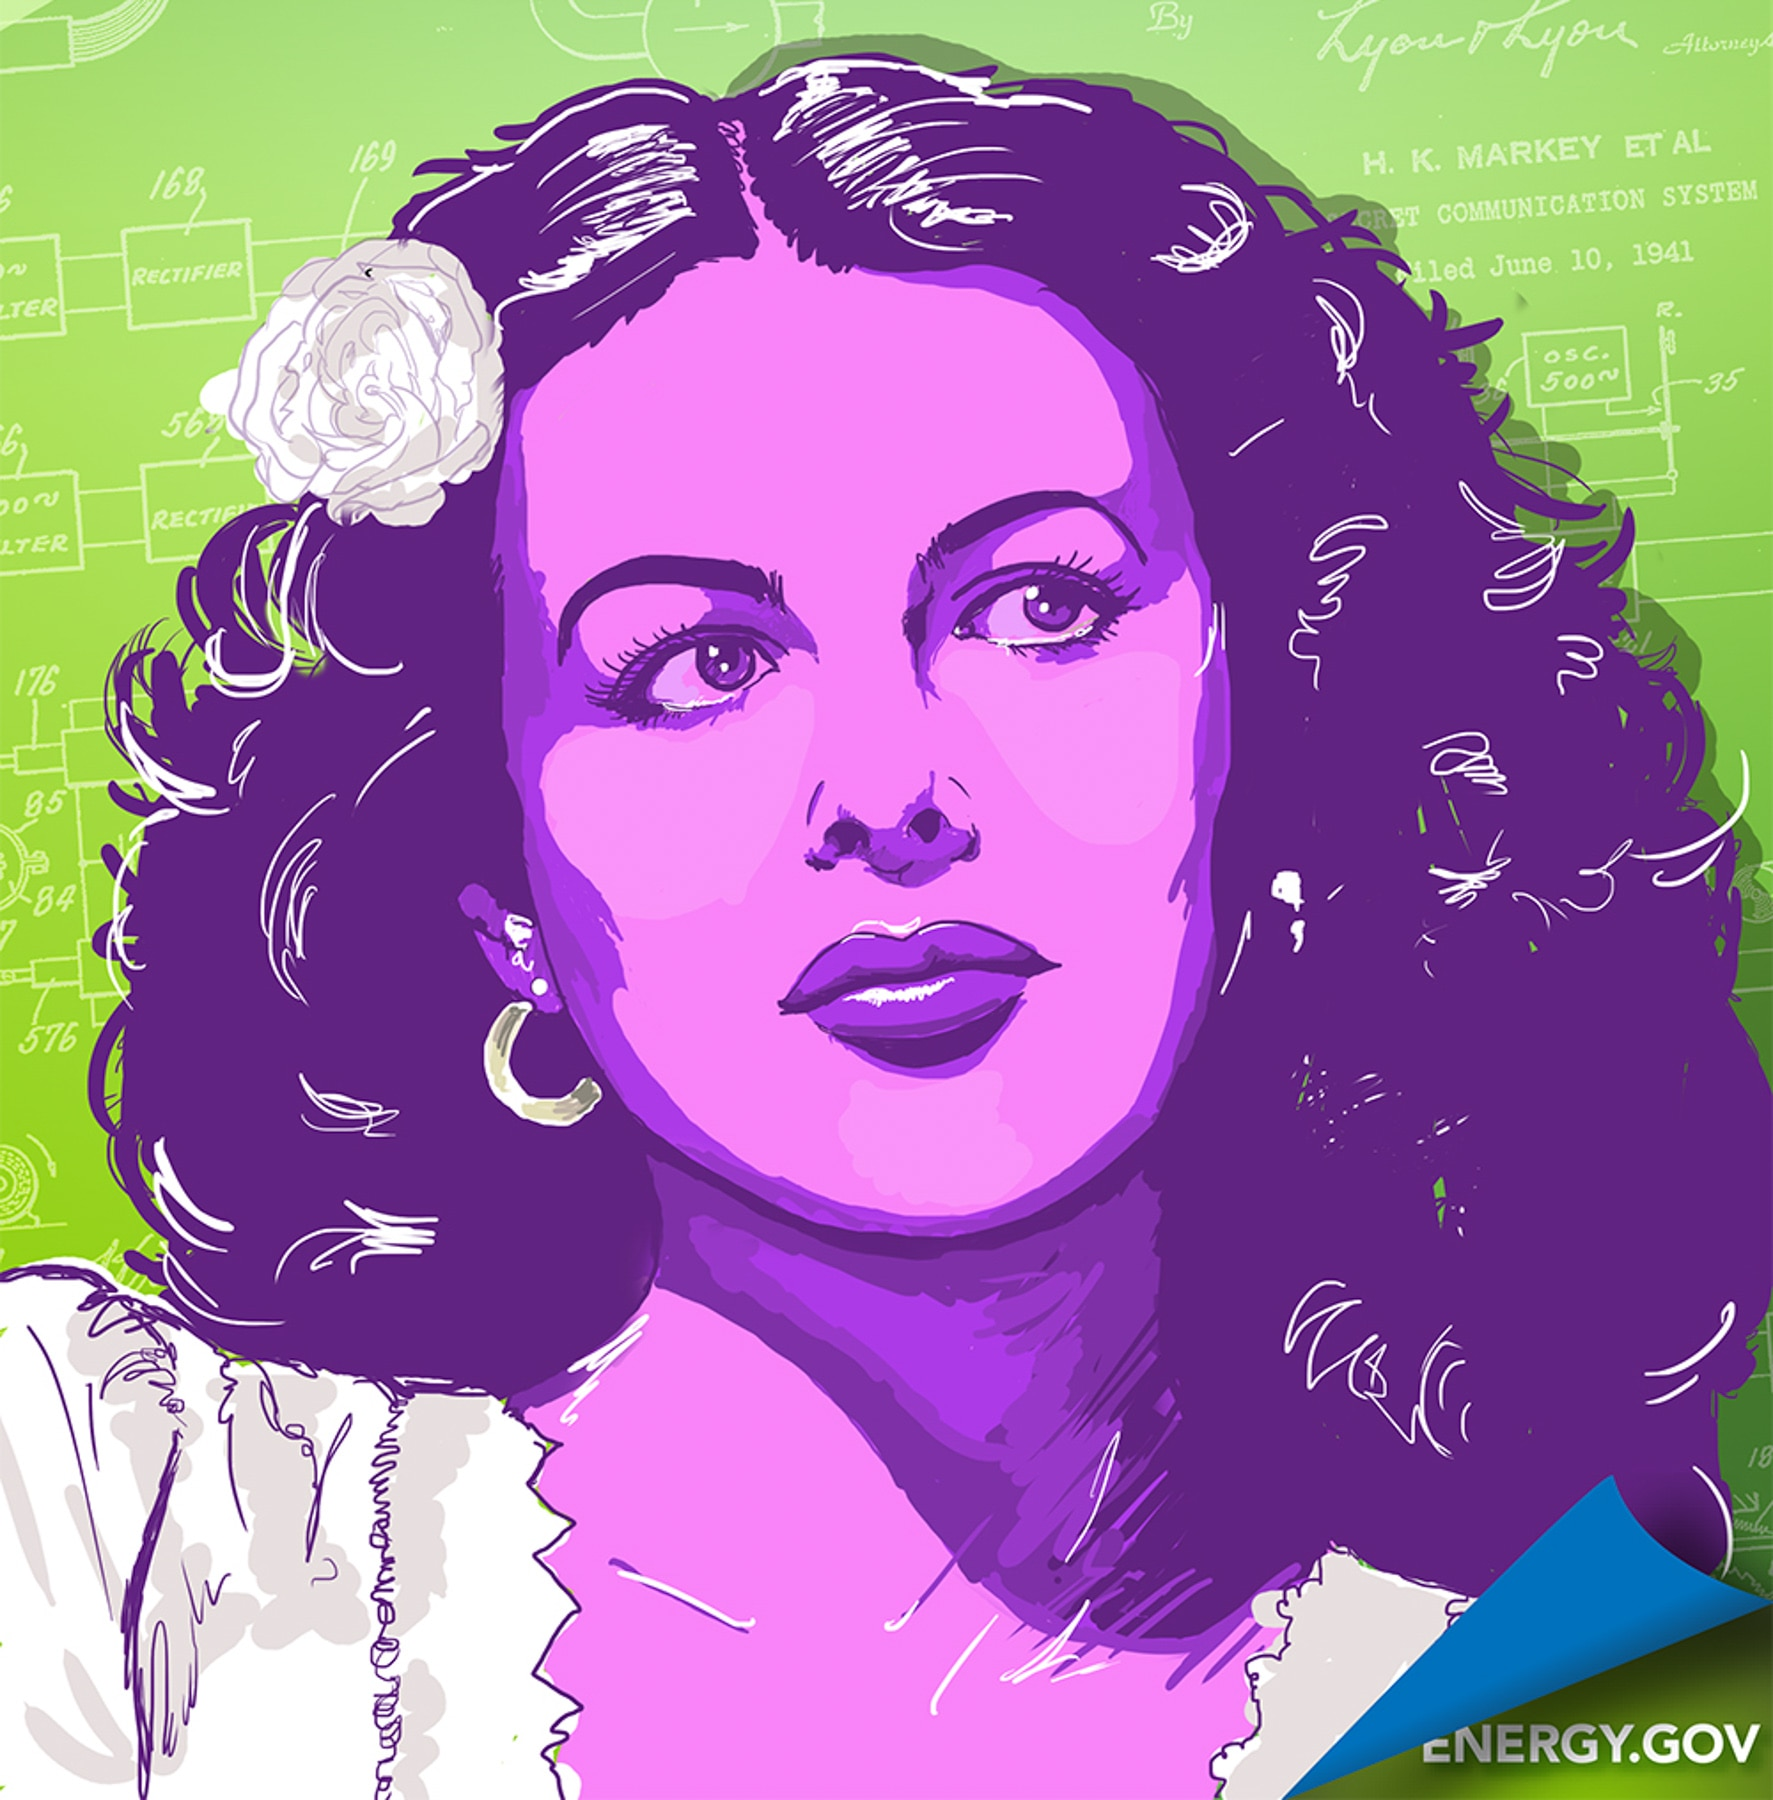 Posterized illustration of Hedy Lamarr (Energy.gov)